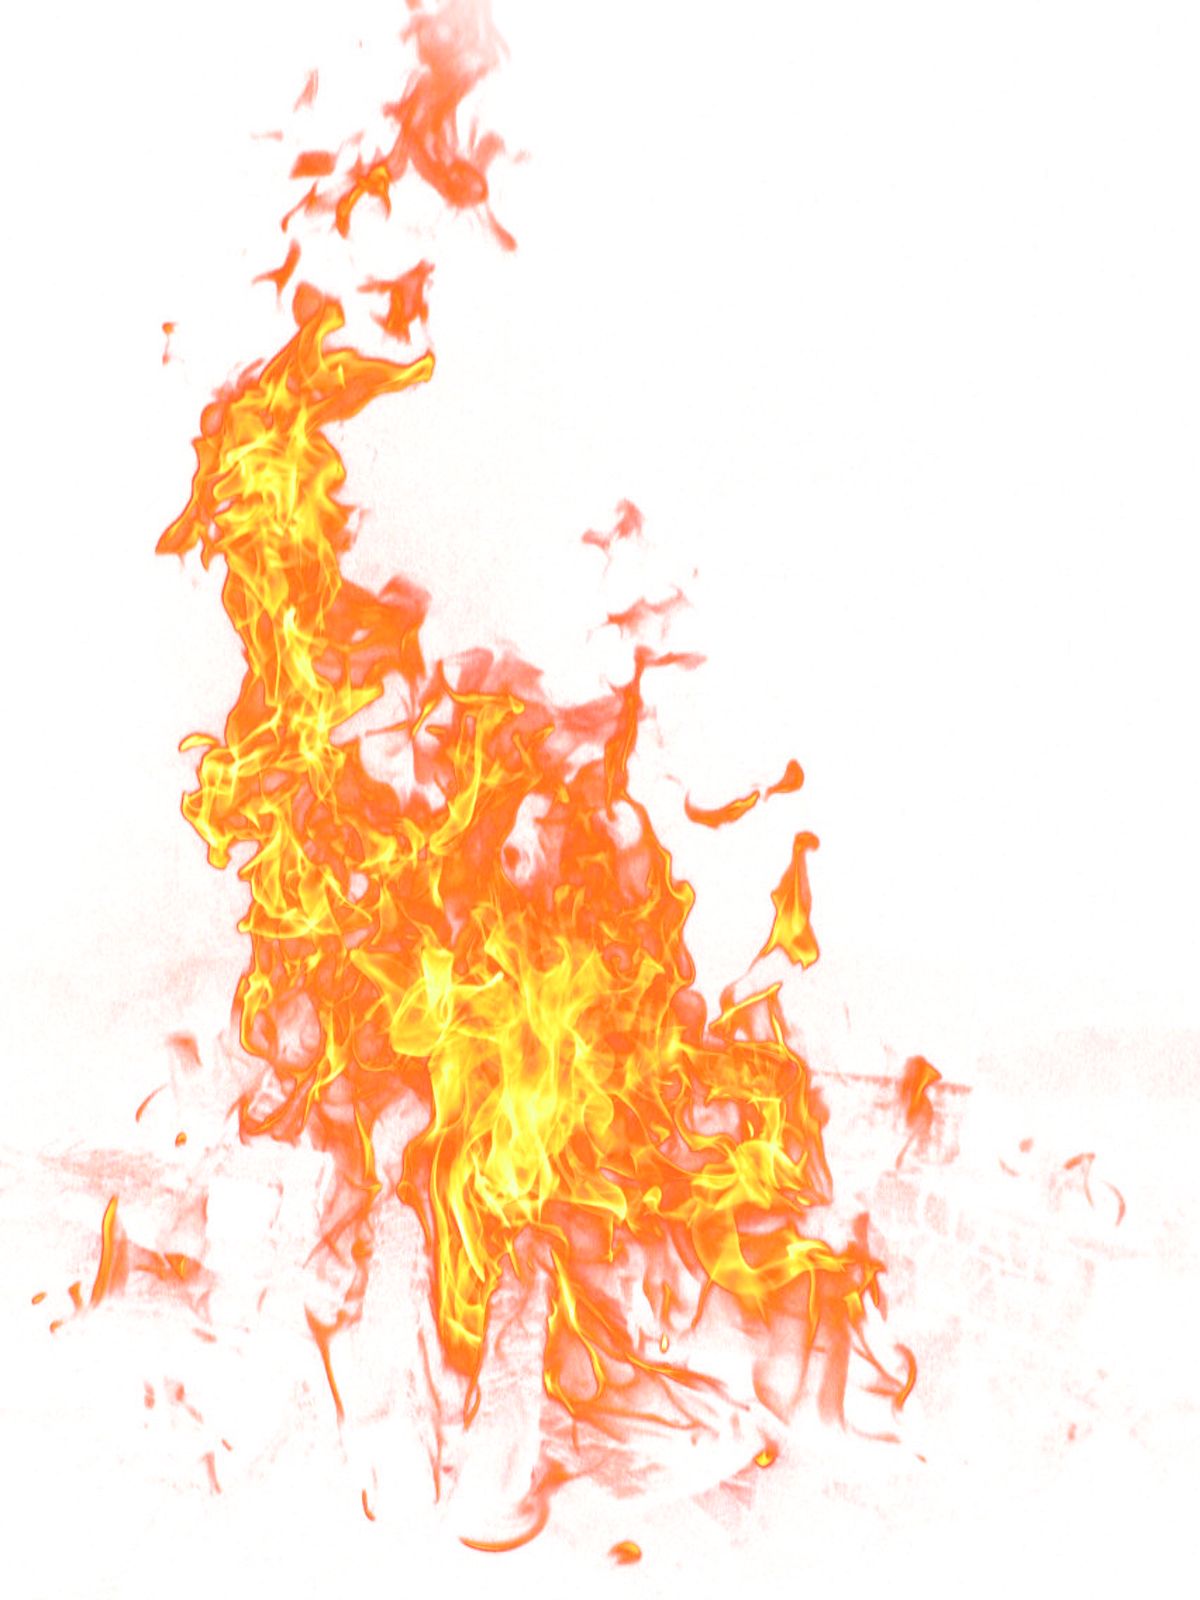 Fire transparent PNG image - Fire Flames PNG